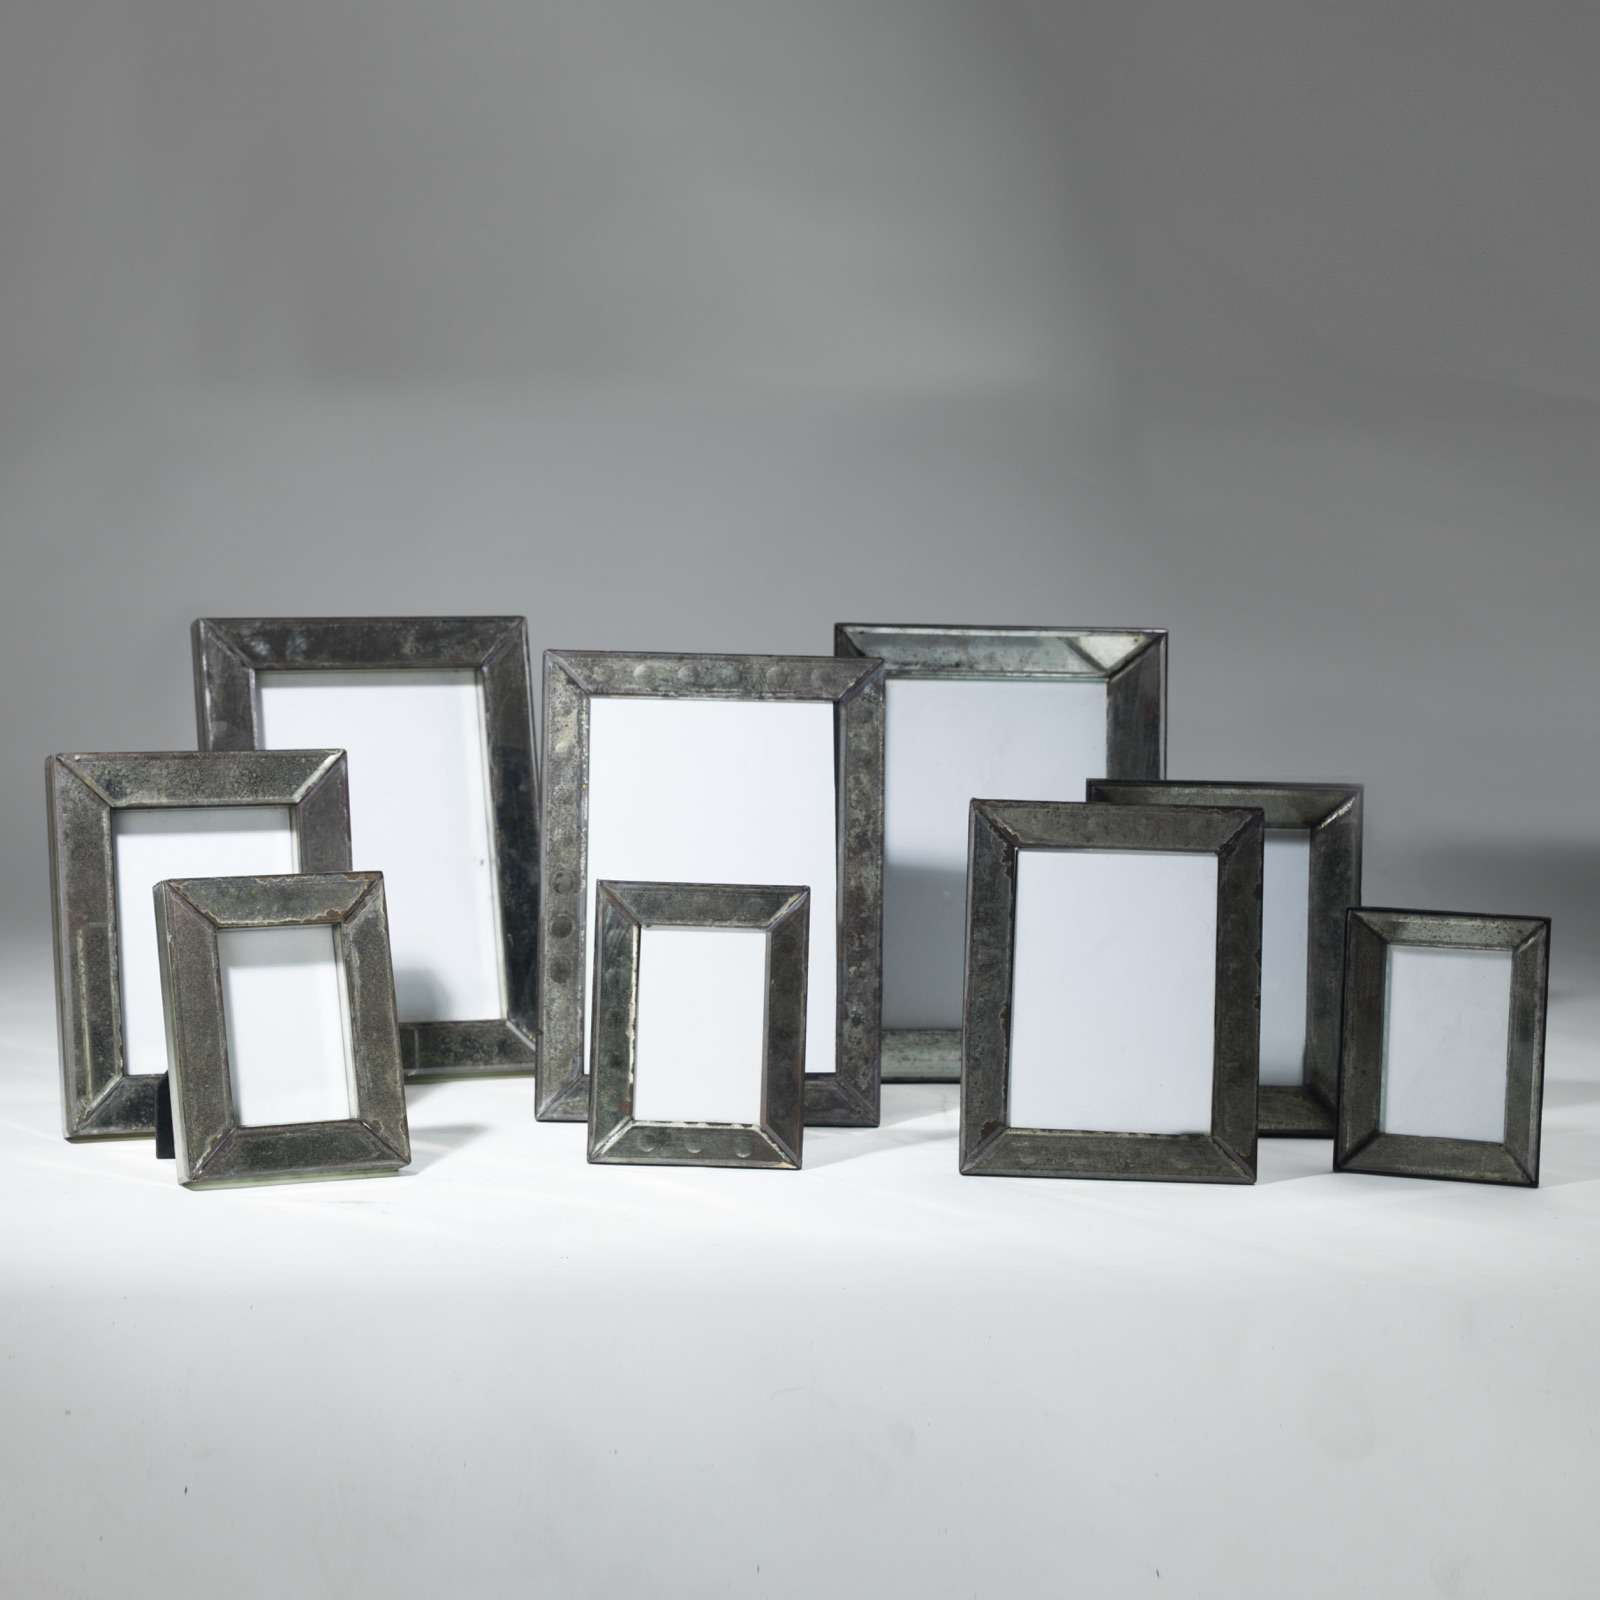 Mirrored Picture Frames Set Of 3 Mirrored Picture Frames T3999 Tyson London